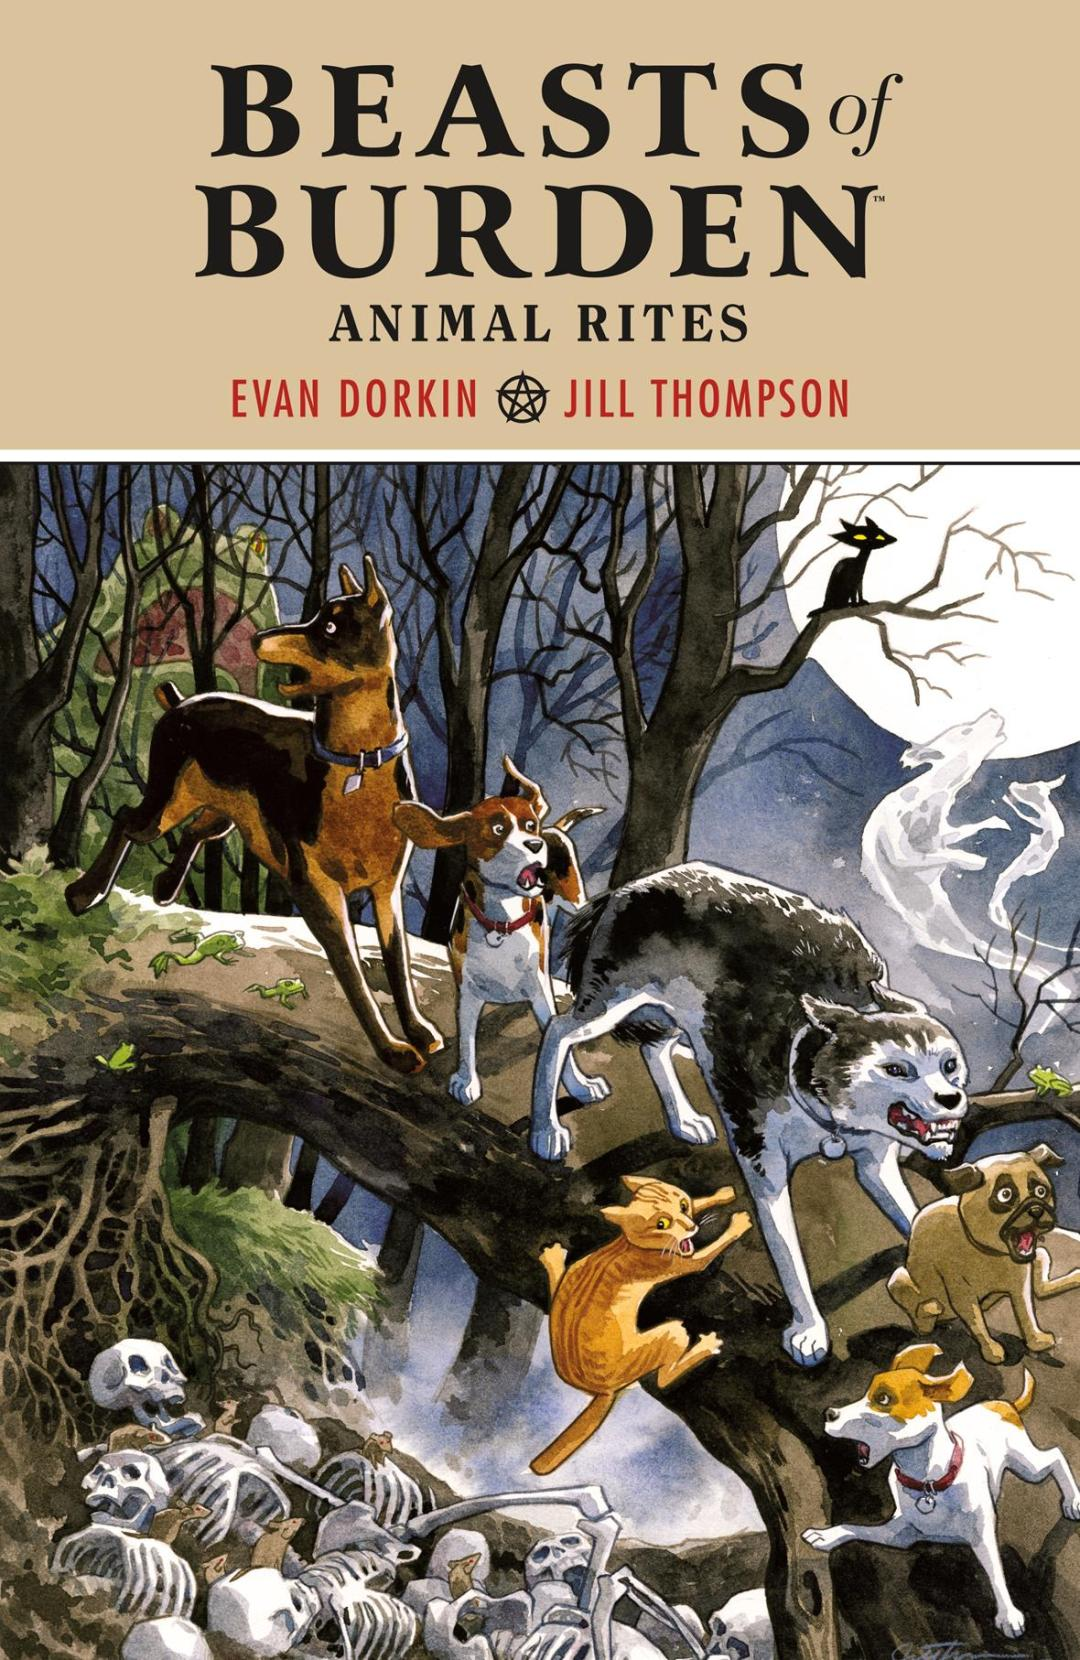 Prepare for a Hair-Raising Paperback Edition of 'Beasts of Burden: Animal Rites'